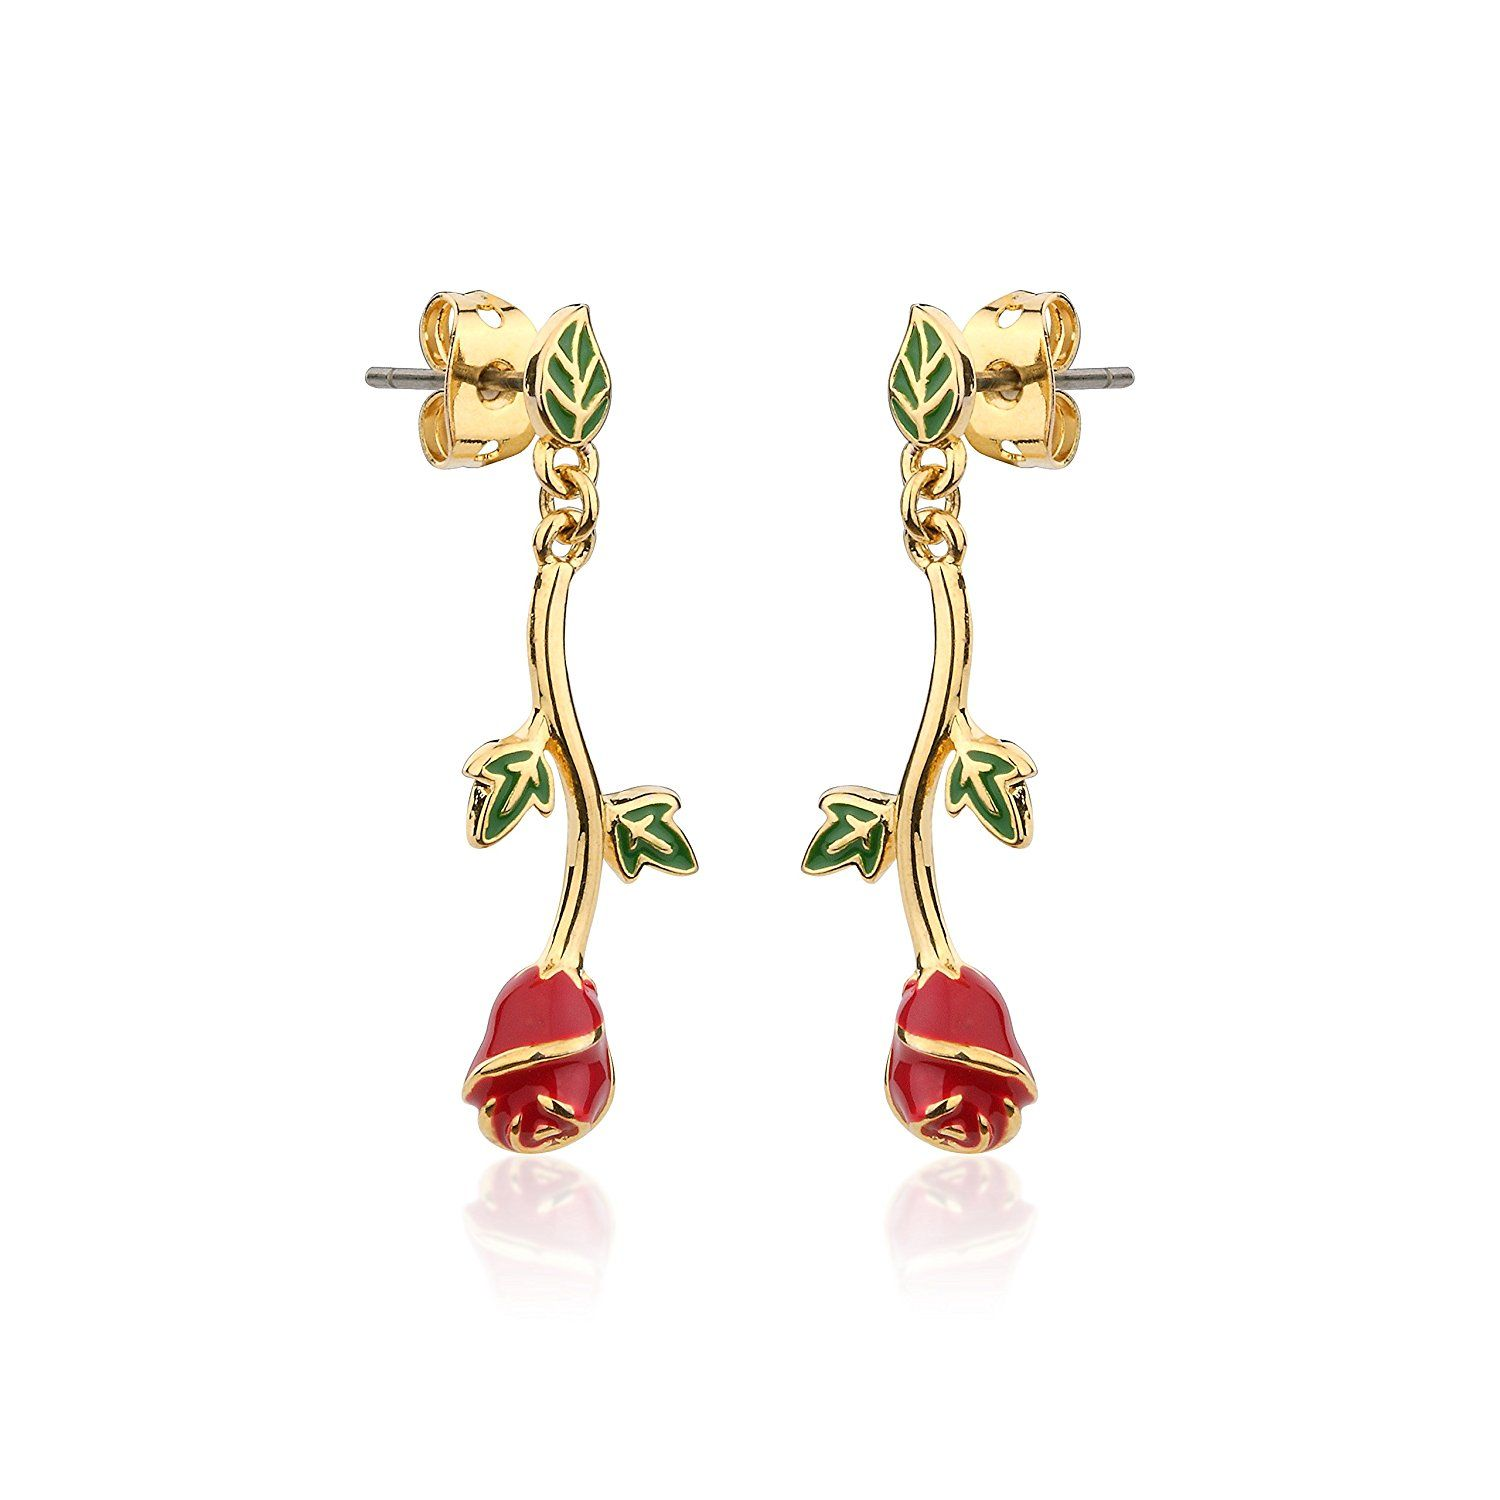 Disney Beauty & the Beast Gold-Plated Enchanted Red Rose Stud Earrings guCYjkB7b